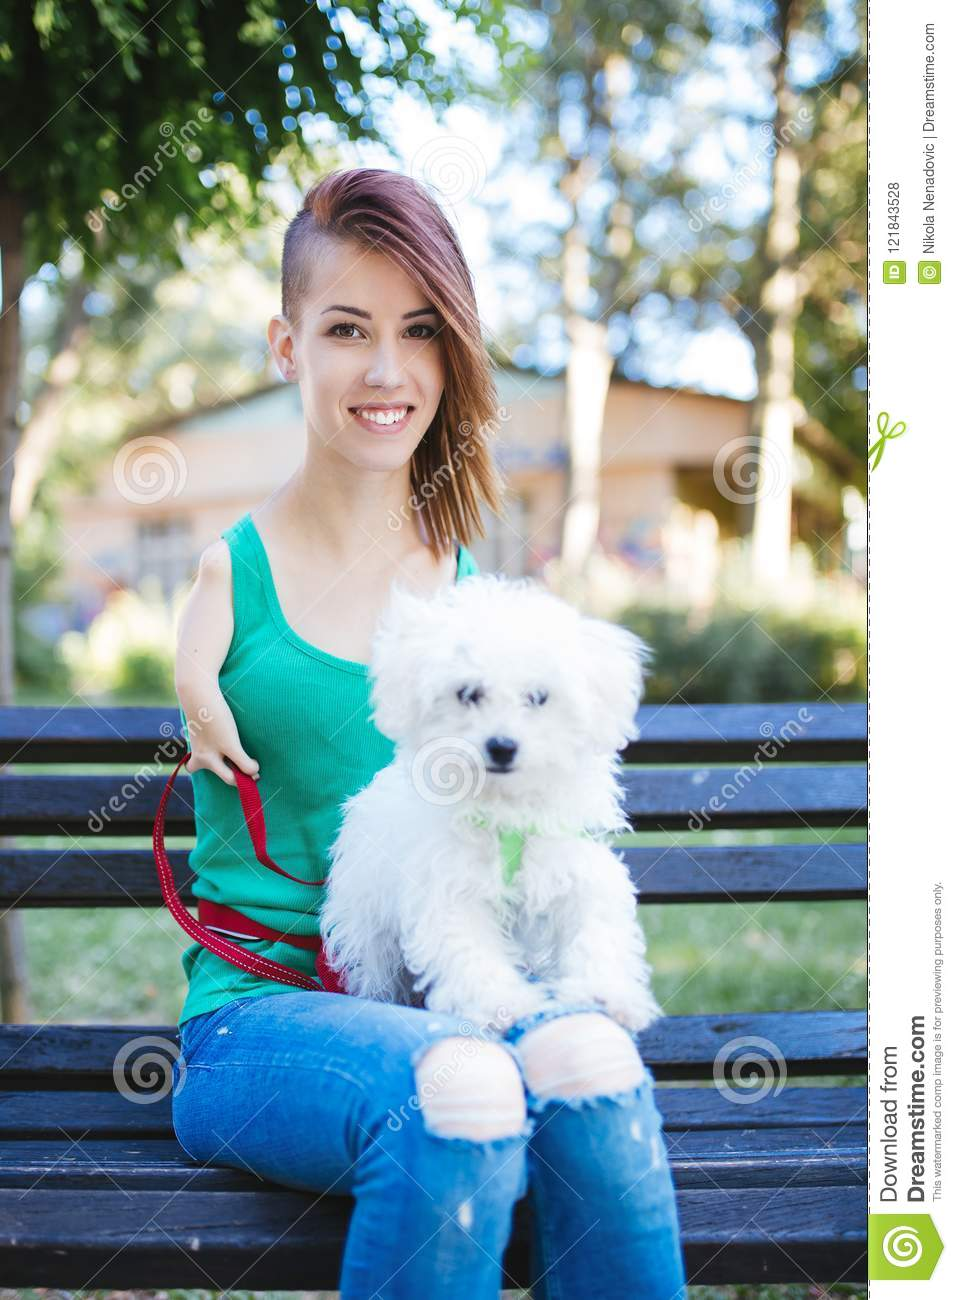 Disabled young woman with dog